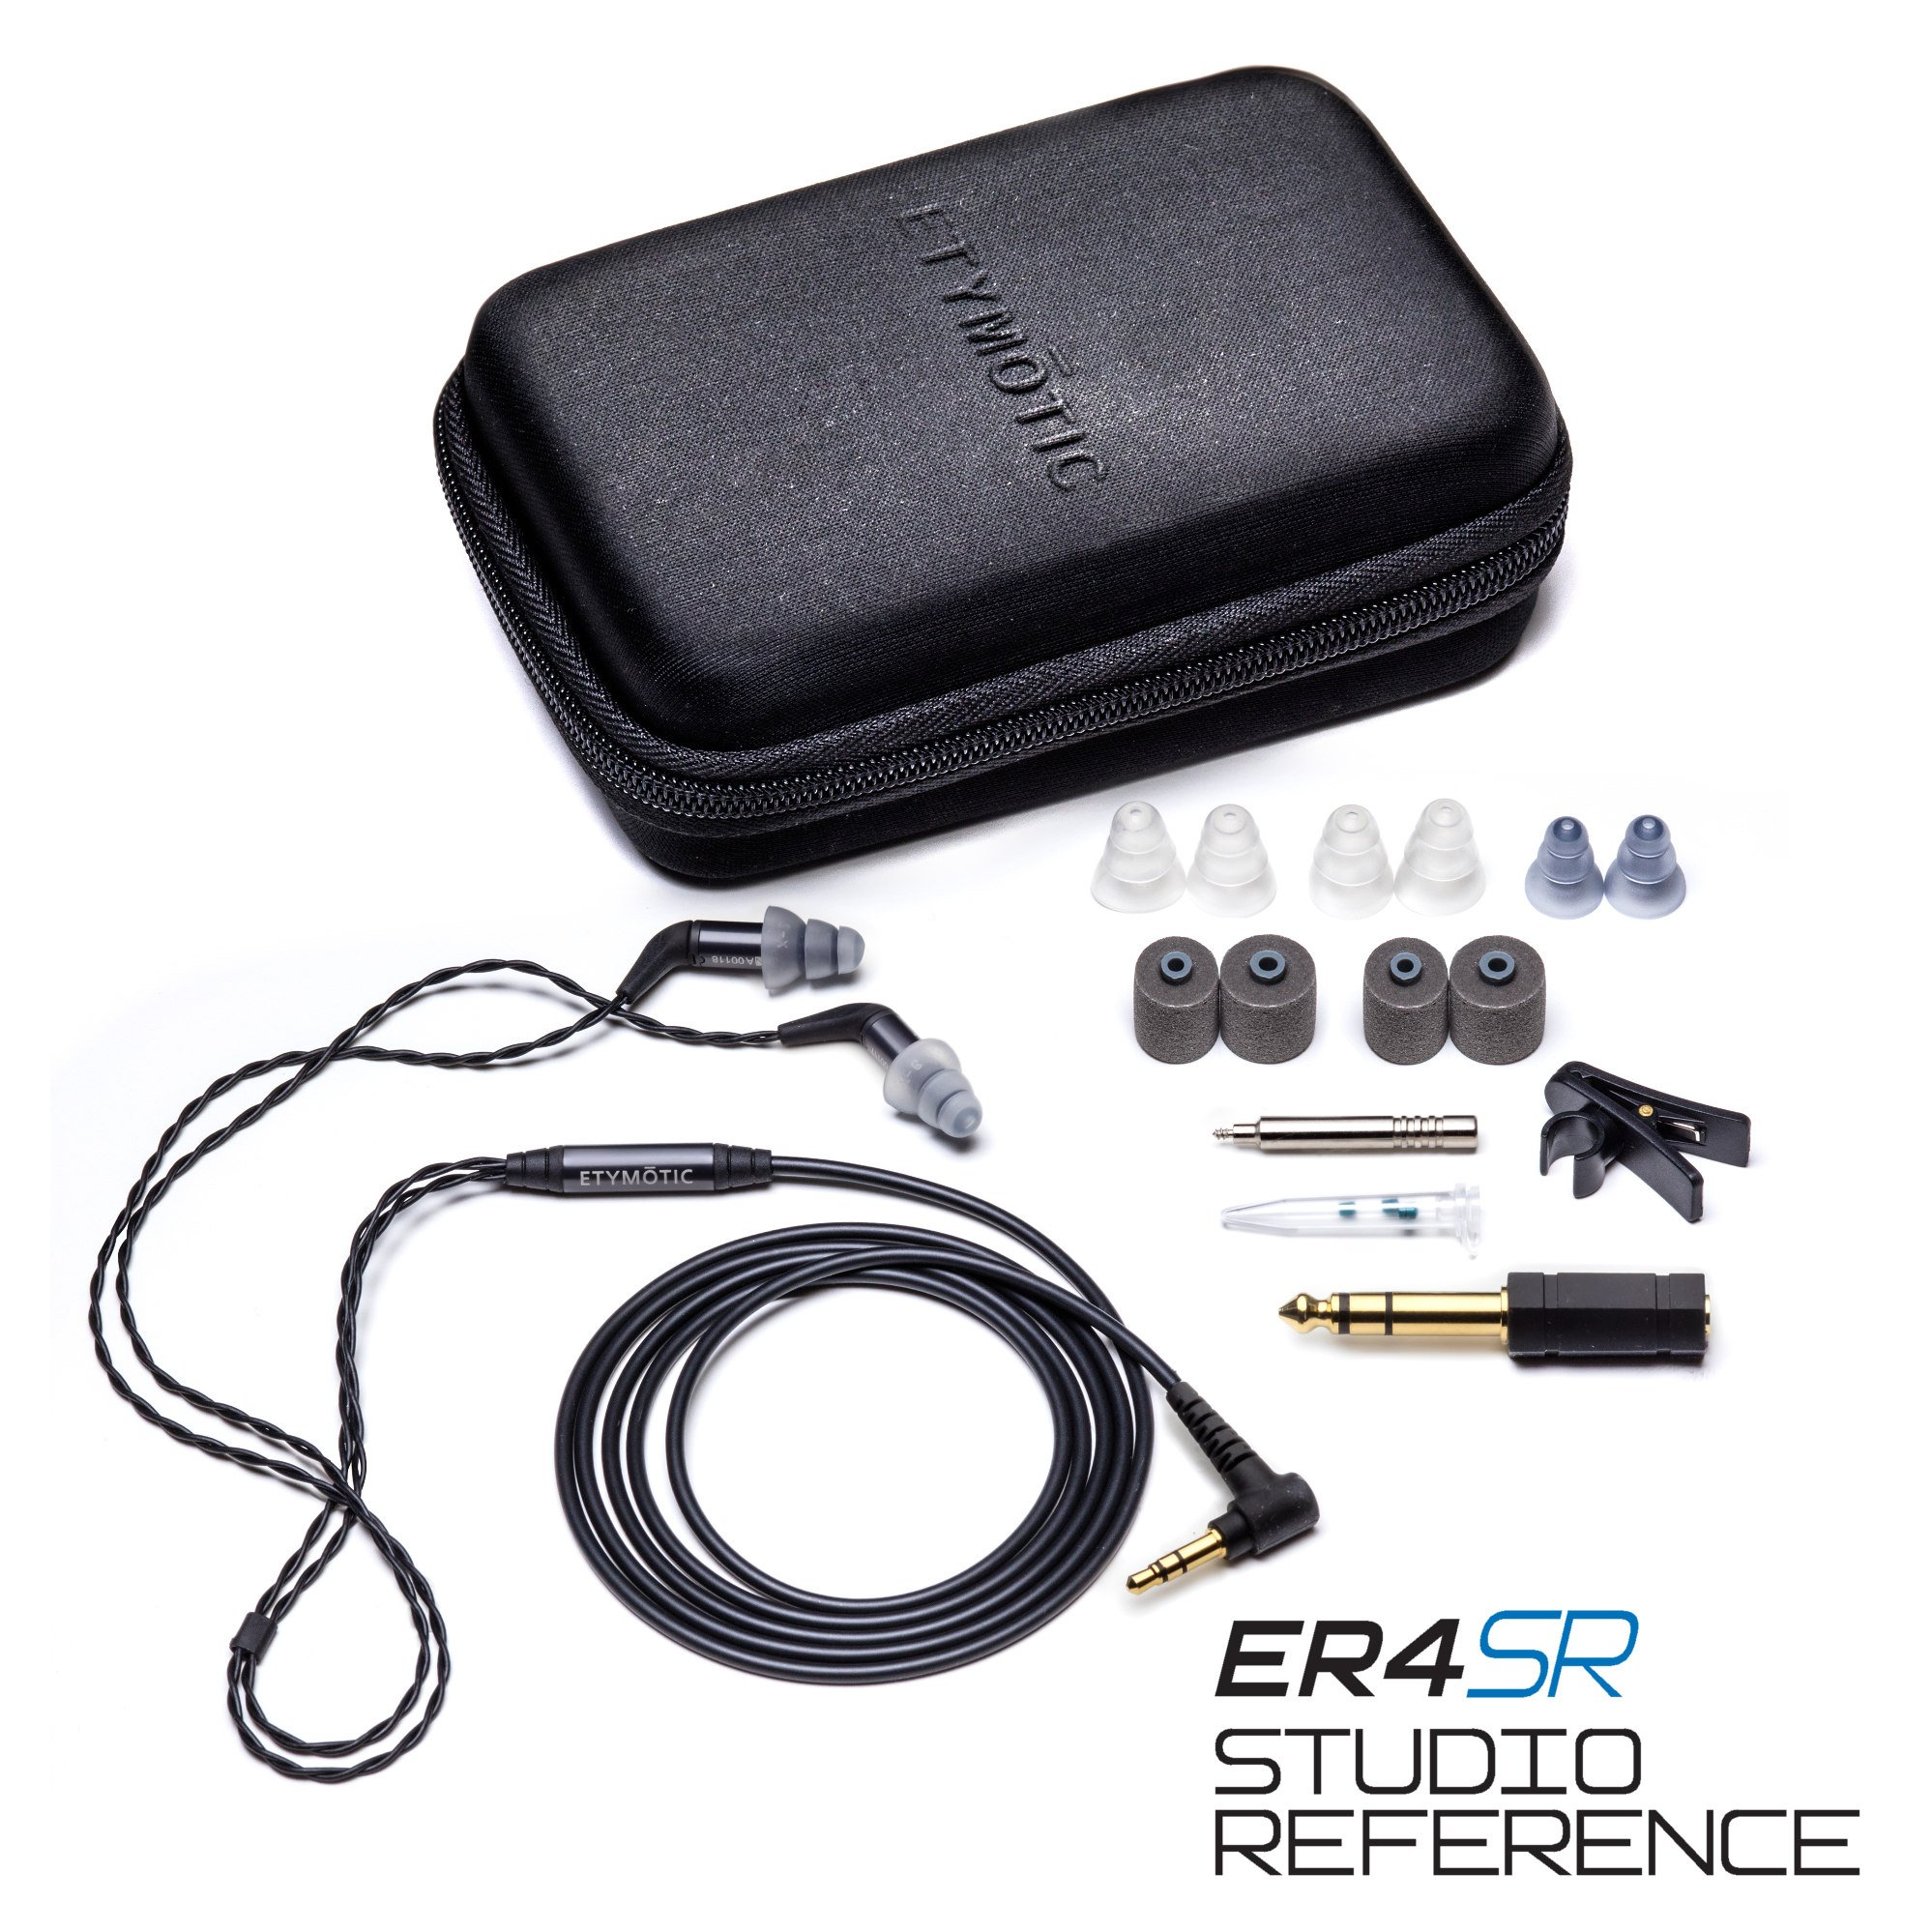 Studio Reference In-Ear Headphones